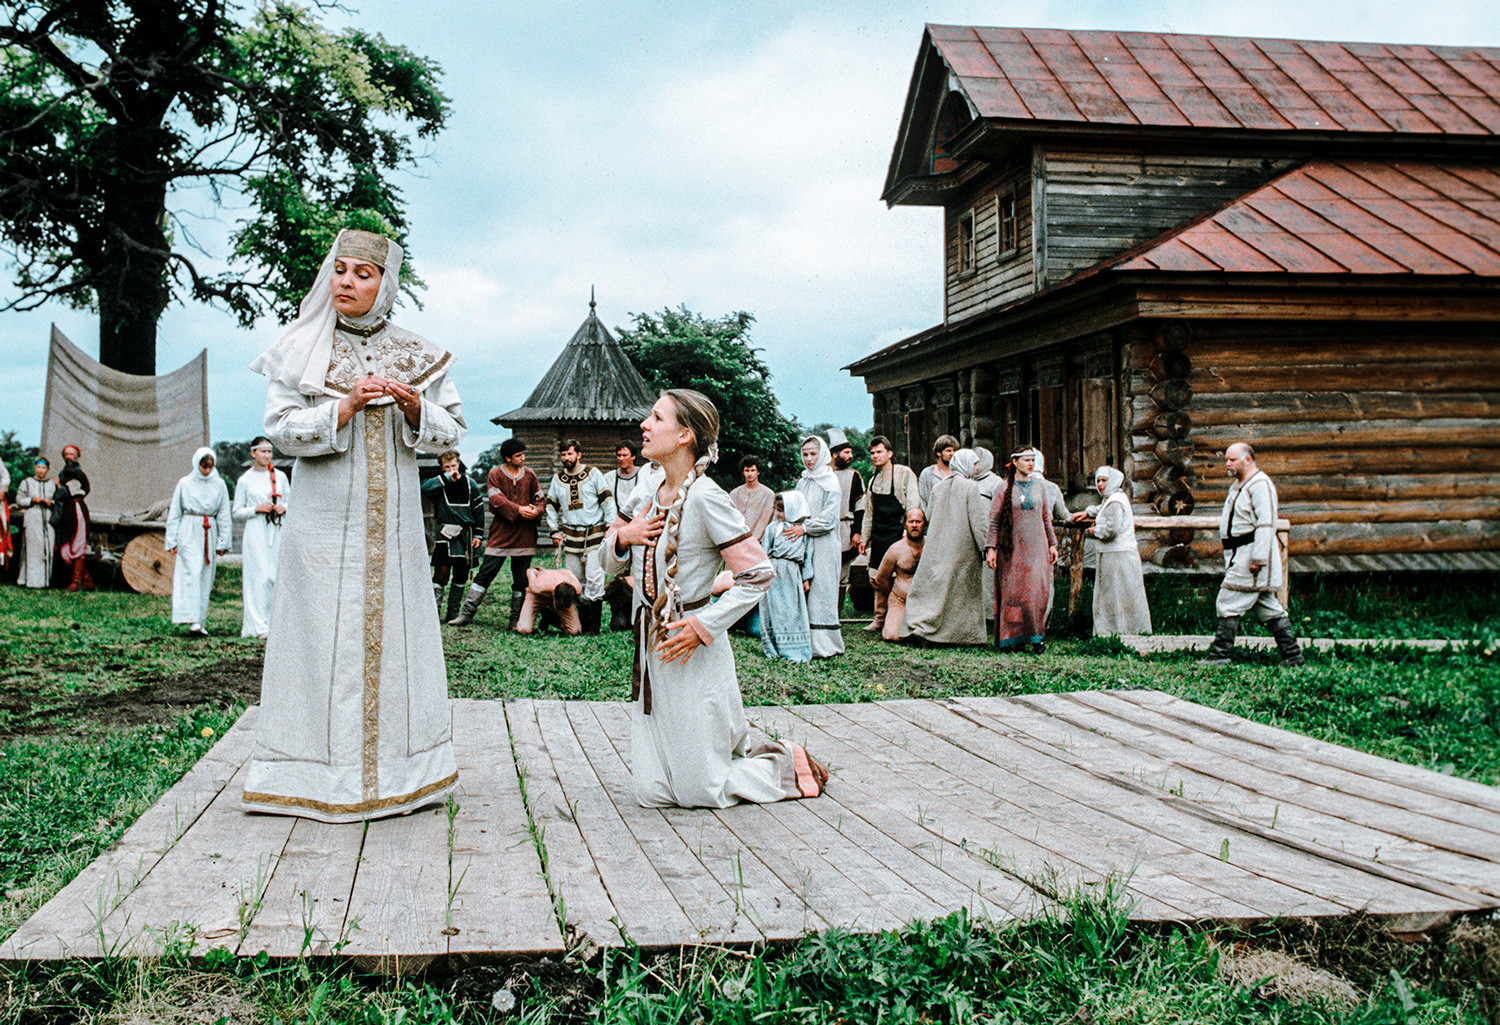 Historical performance in the Museum of Wooden Architecture